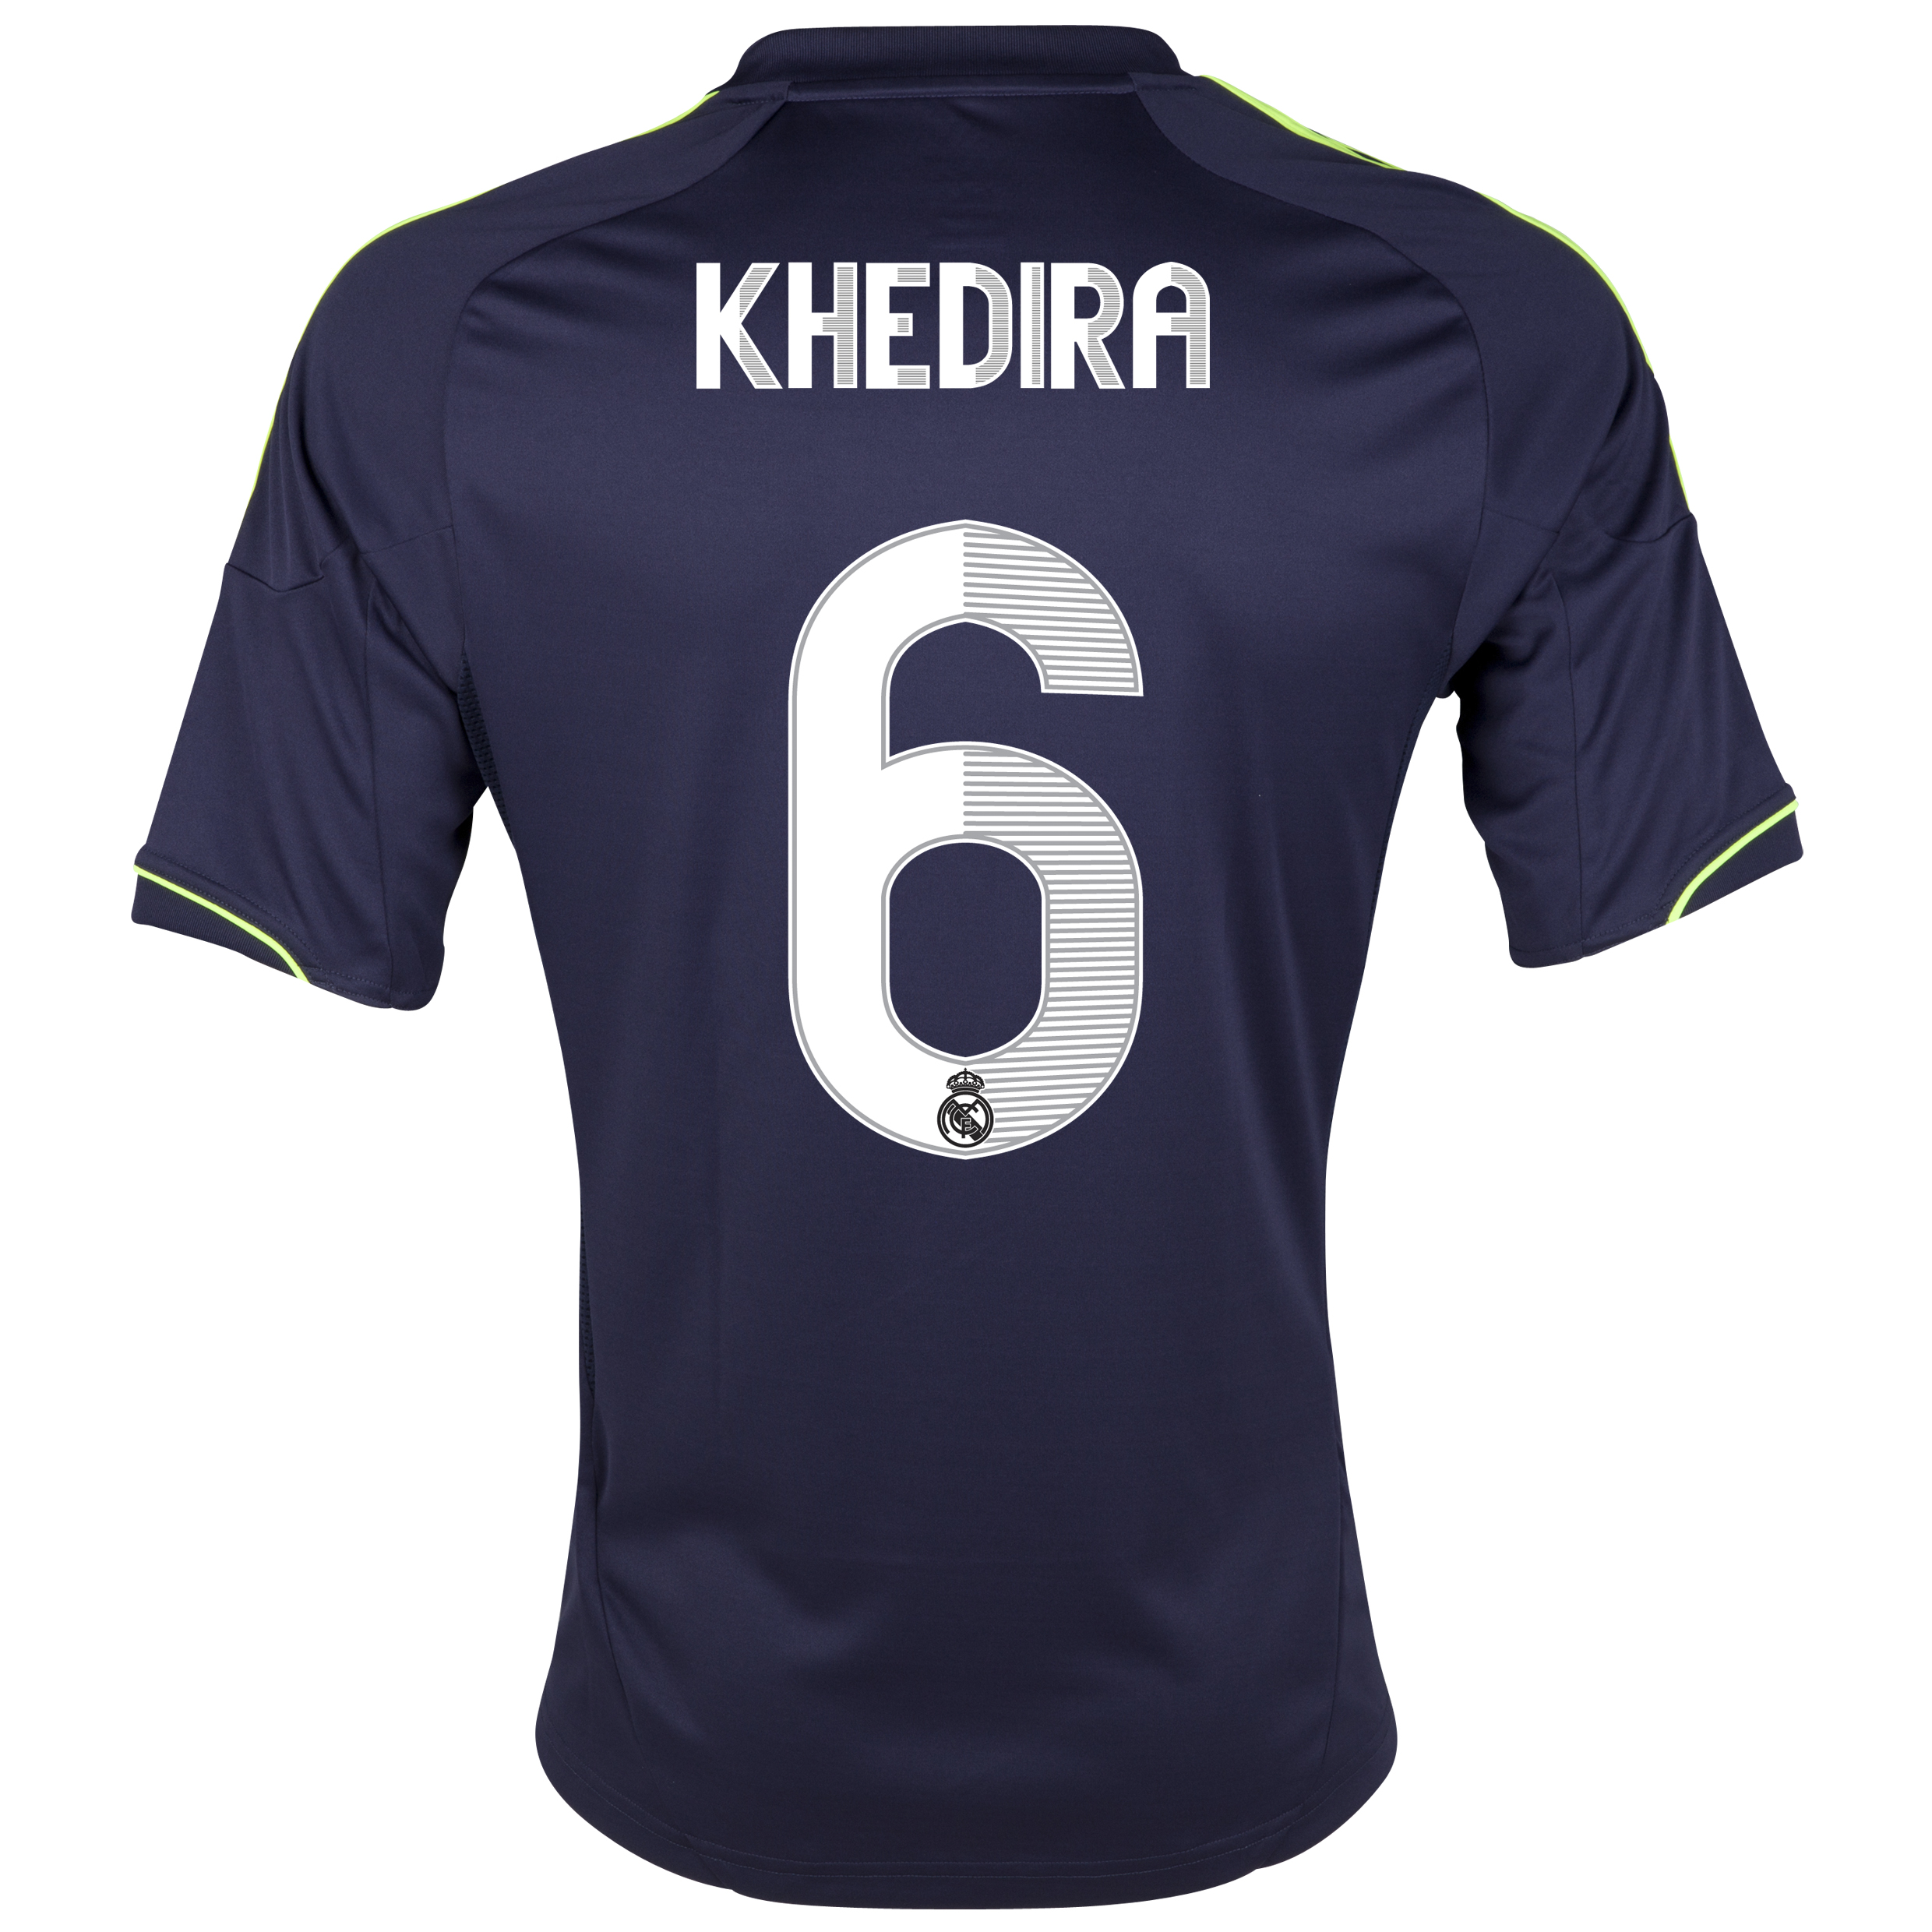 Camiseta visitante Real Madrid 2012/13 con impresin 6 Khedira